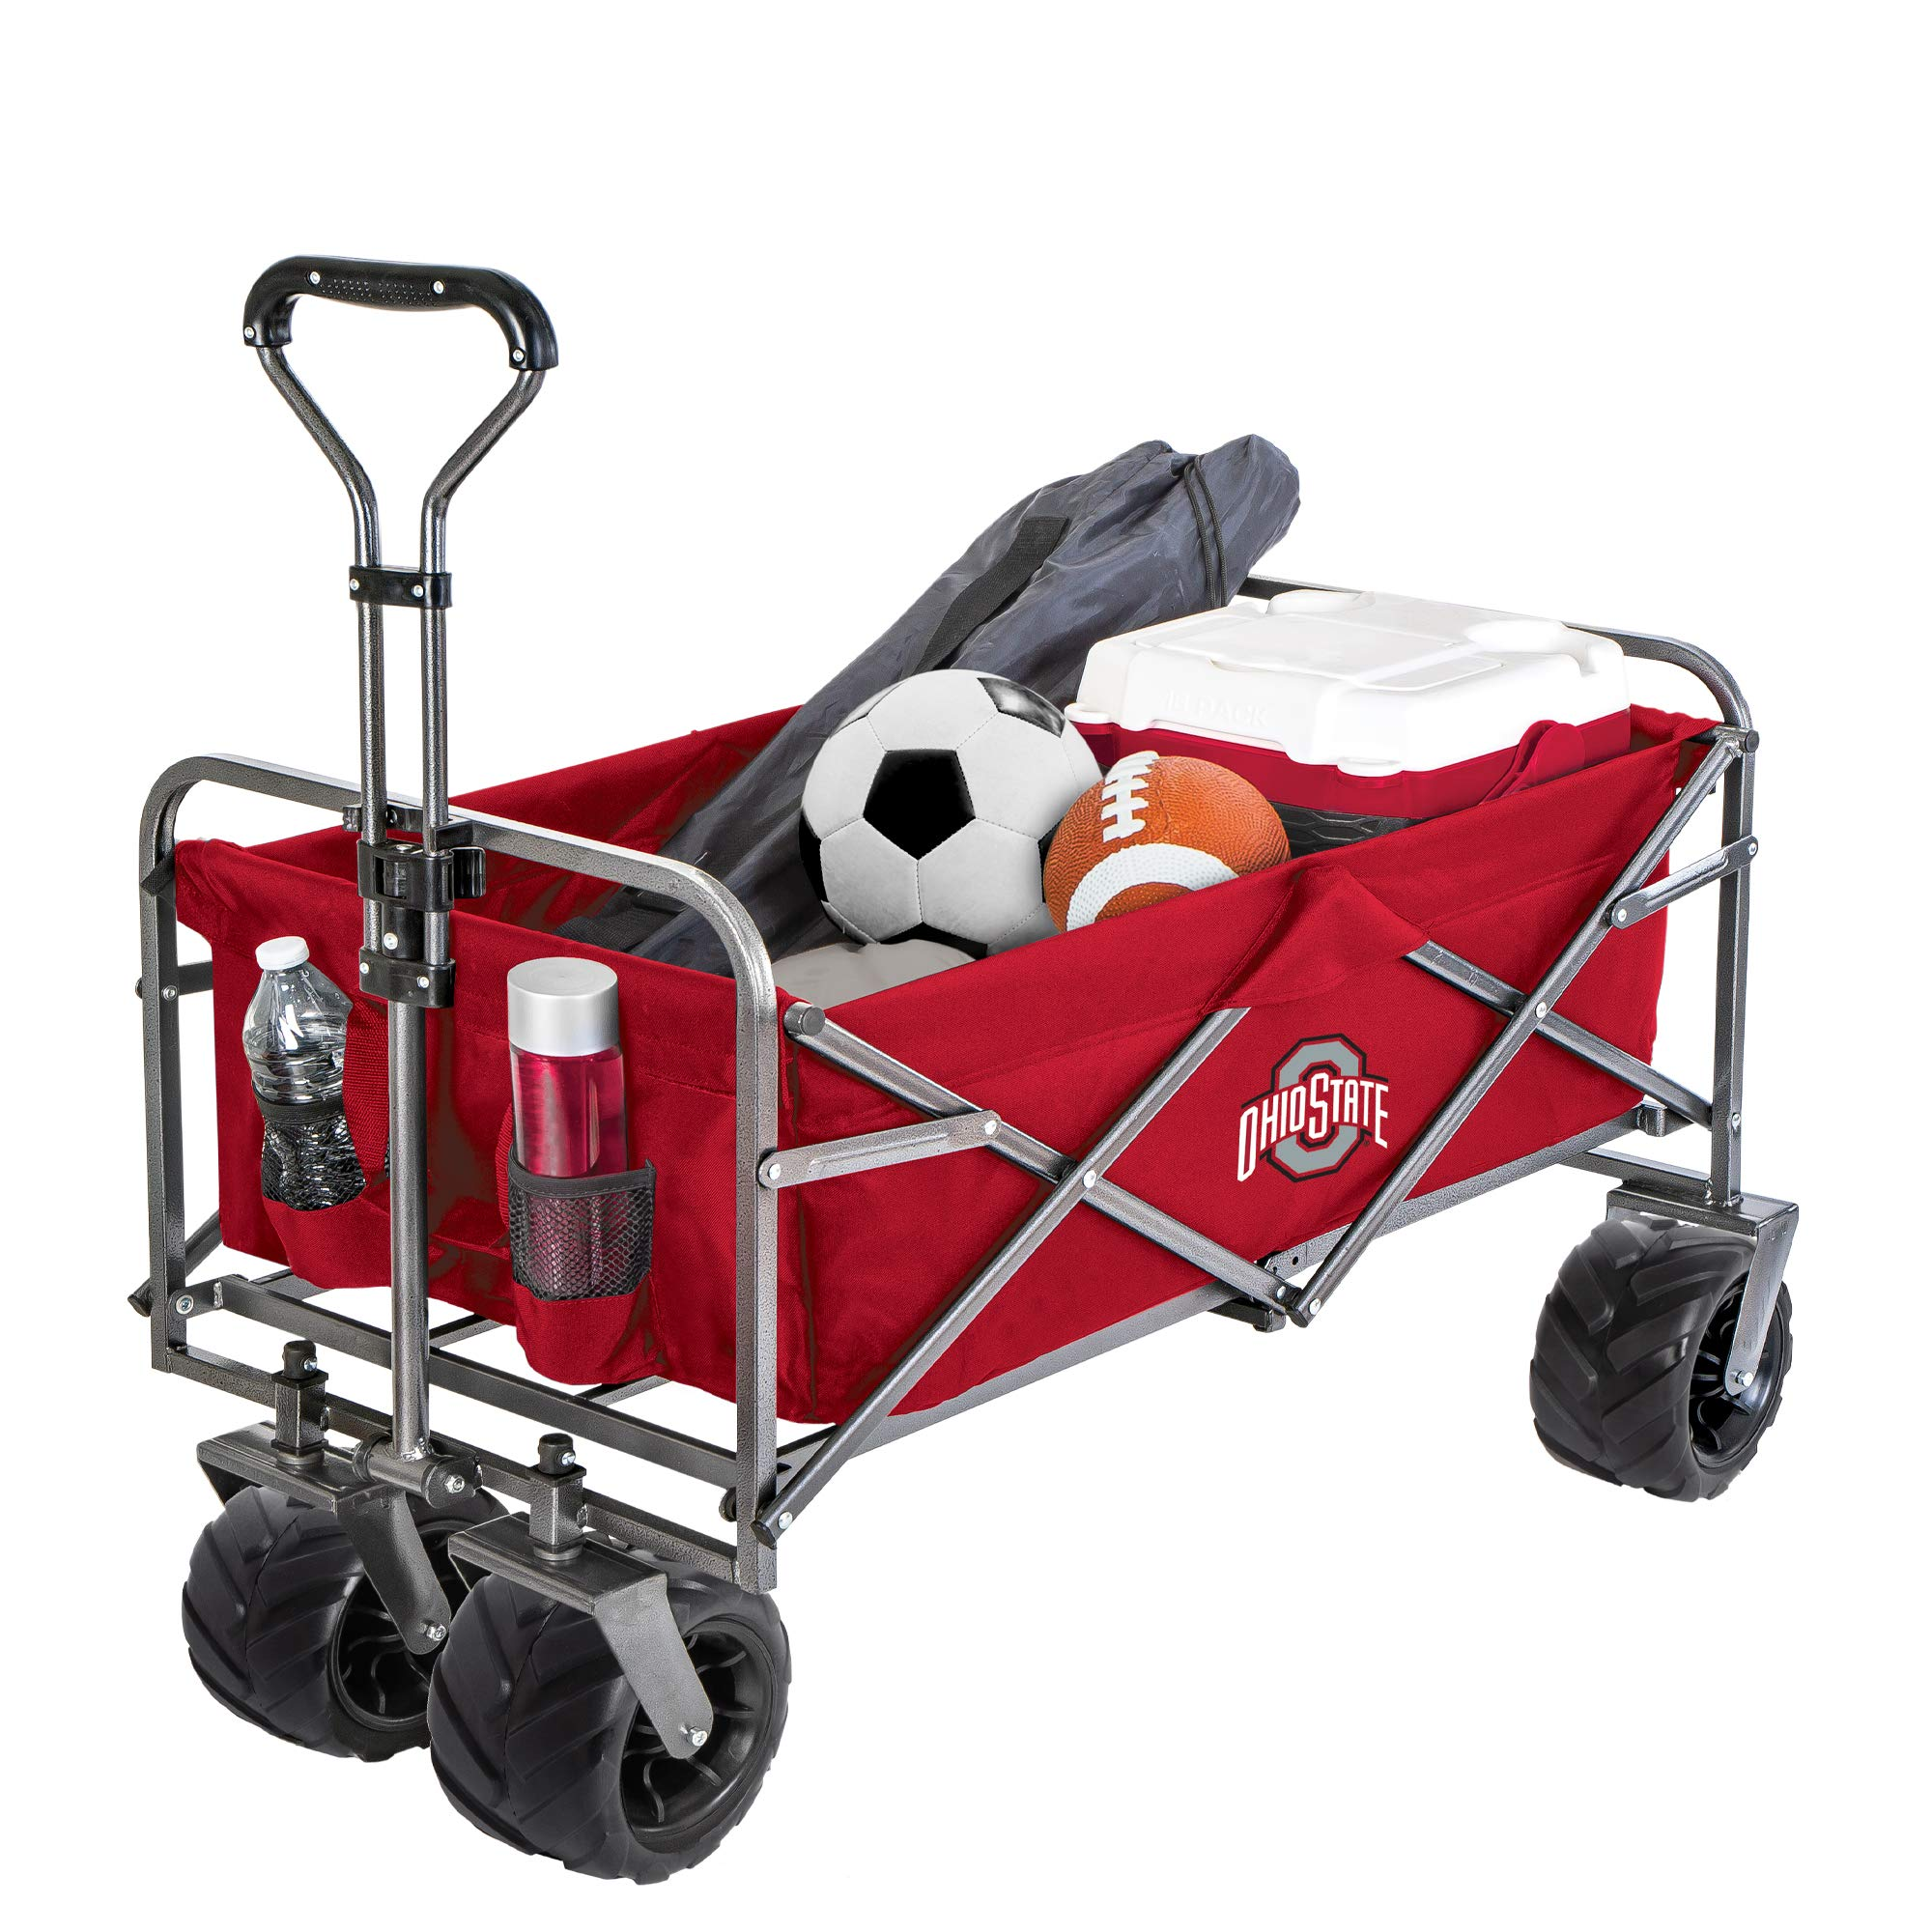 Smart Design Collegiate Heavy-Duty Utility Collapsible Wagon - Beach Cart - 20.15 x 35.5 x 22.5 inch - Ohio State University Team Design - Officially Licensed Logo - Grey & Scarlet Colors - [Buckeyes] by Smart Design